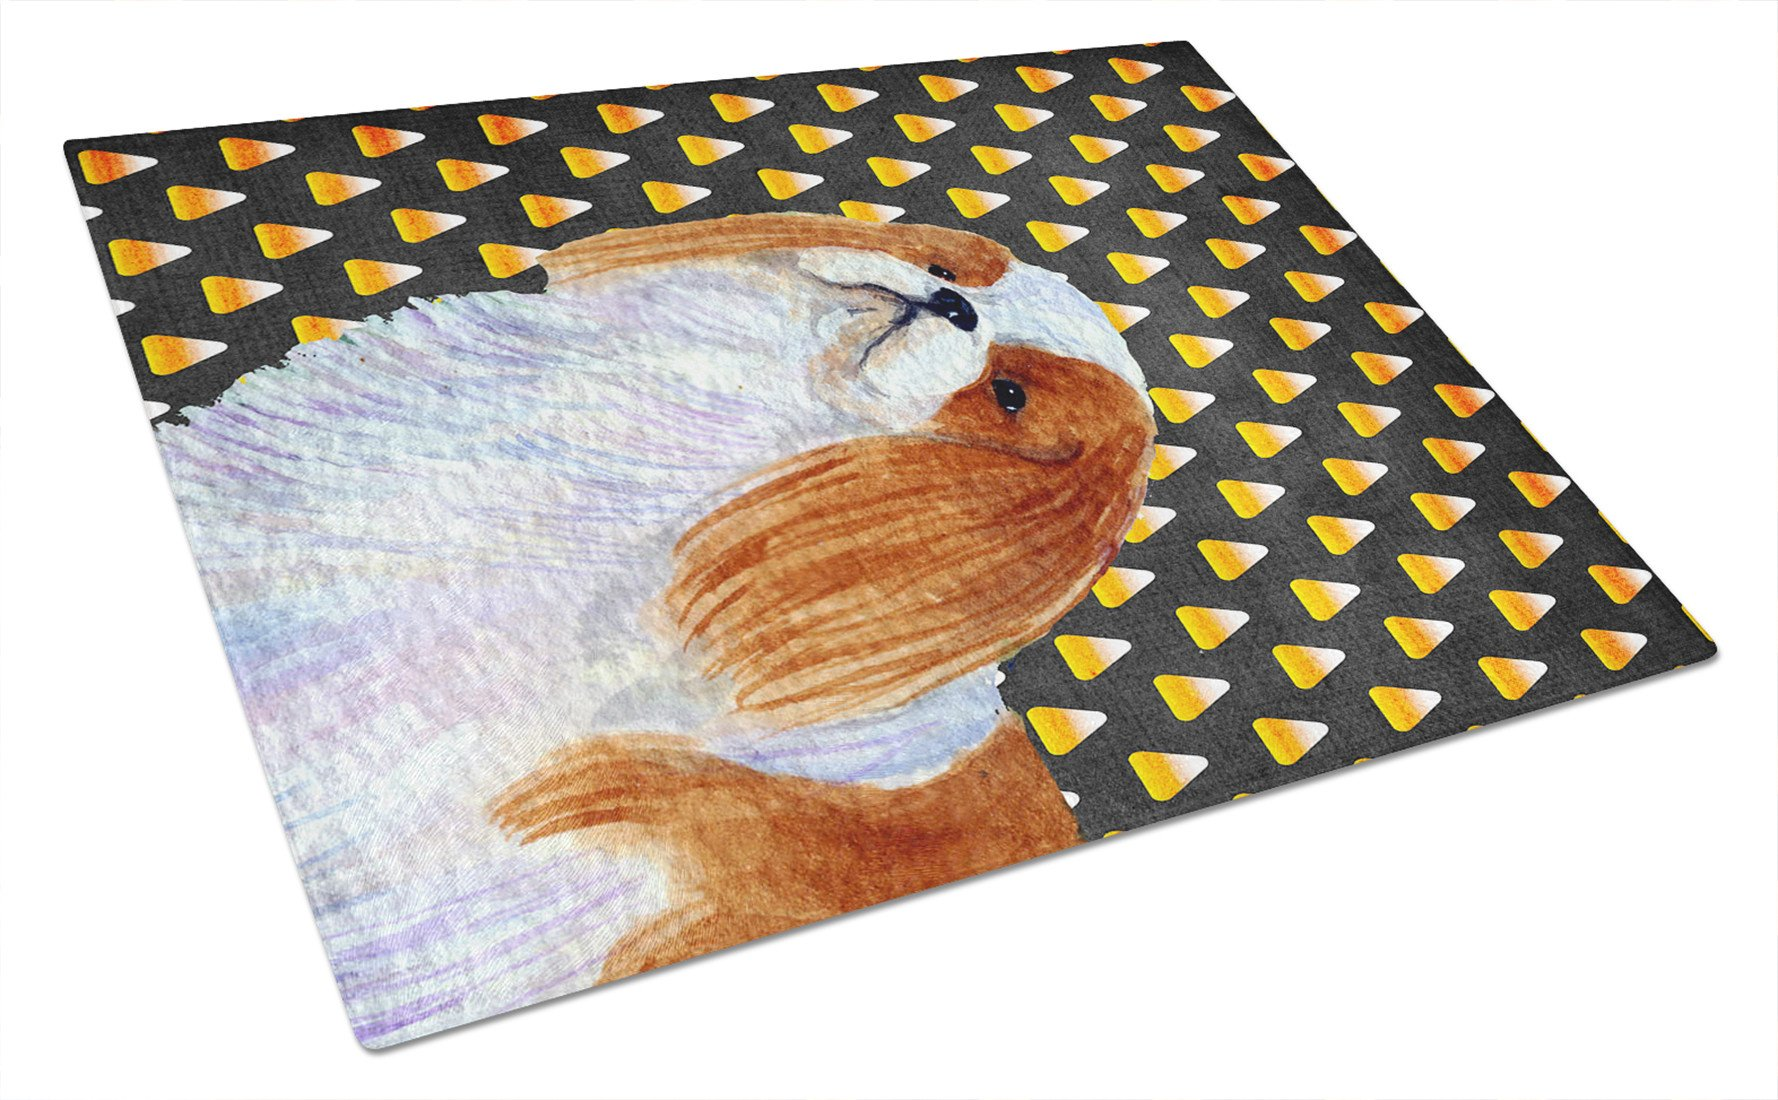 English Toy Spaniel Candy Corn Halloween Portrait Glass Cutting Board Large by Caroline's Treasures